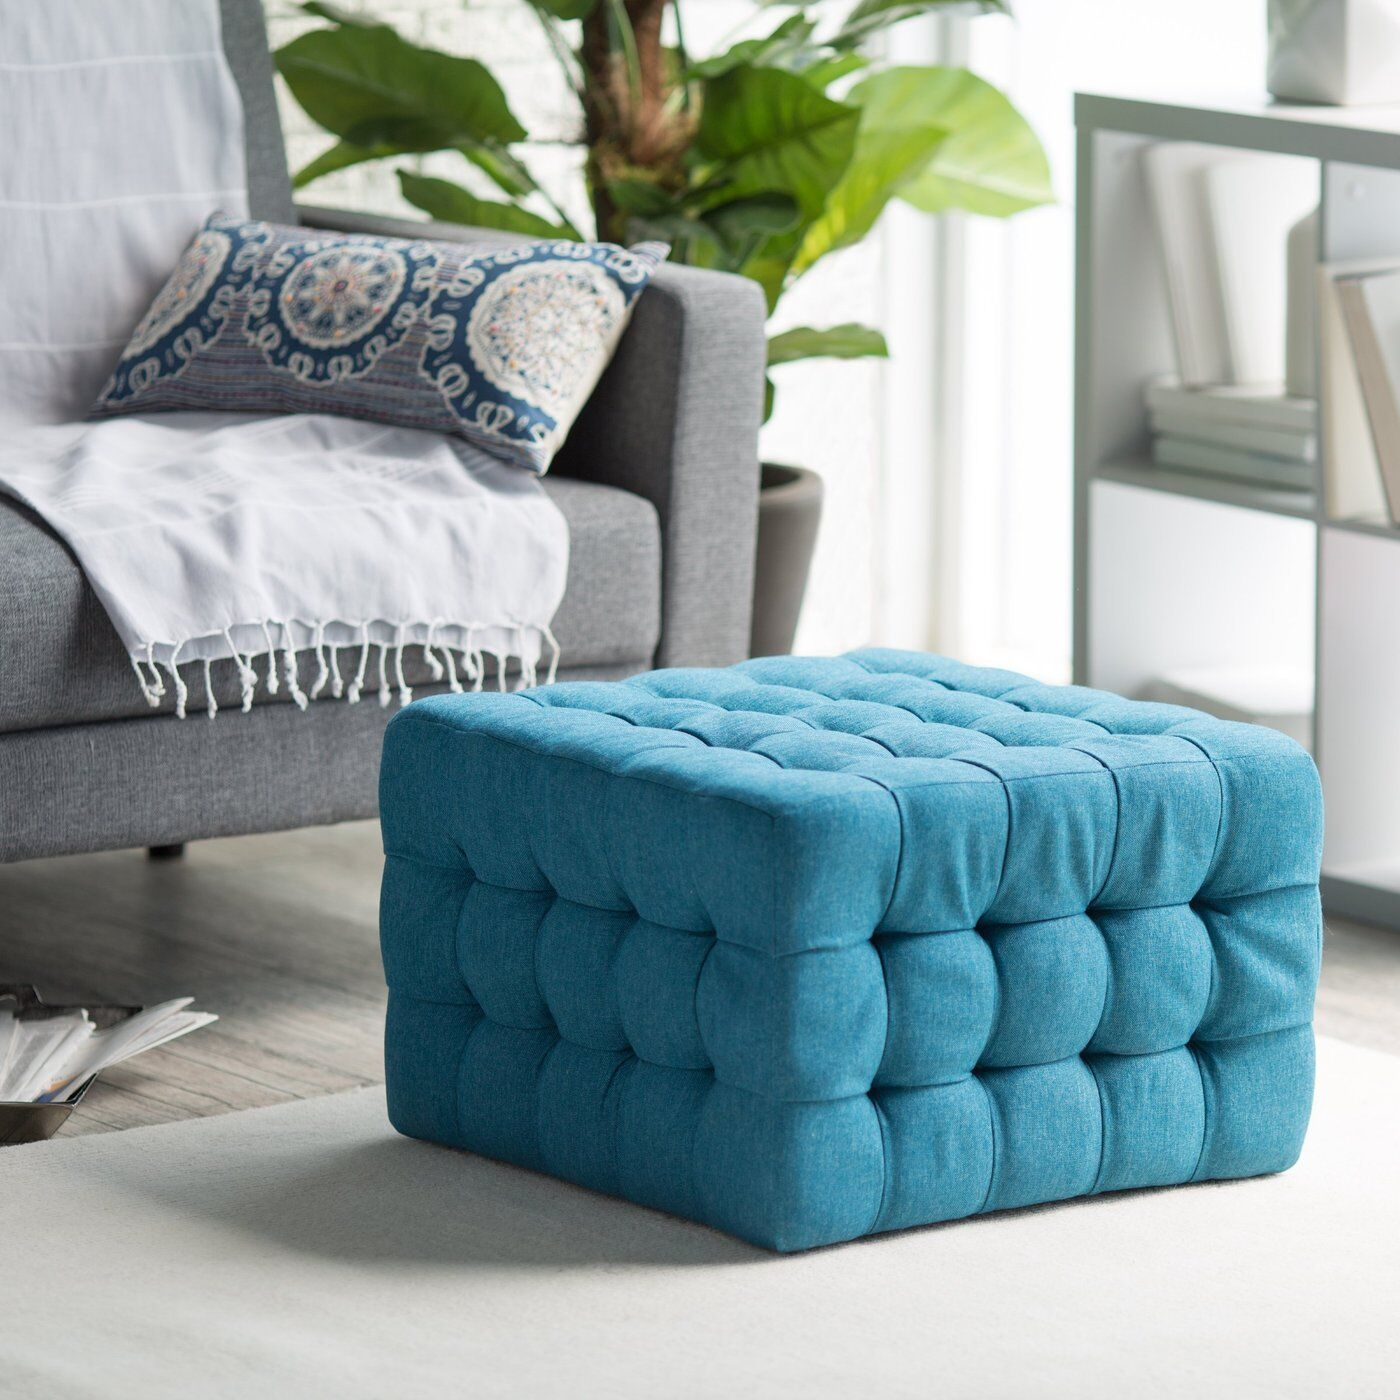 Tufted Ottoman Bench Stool Foot Modern Chair Furniture